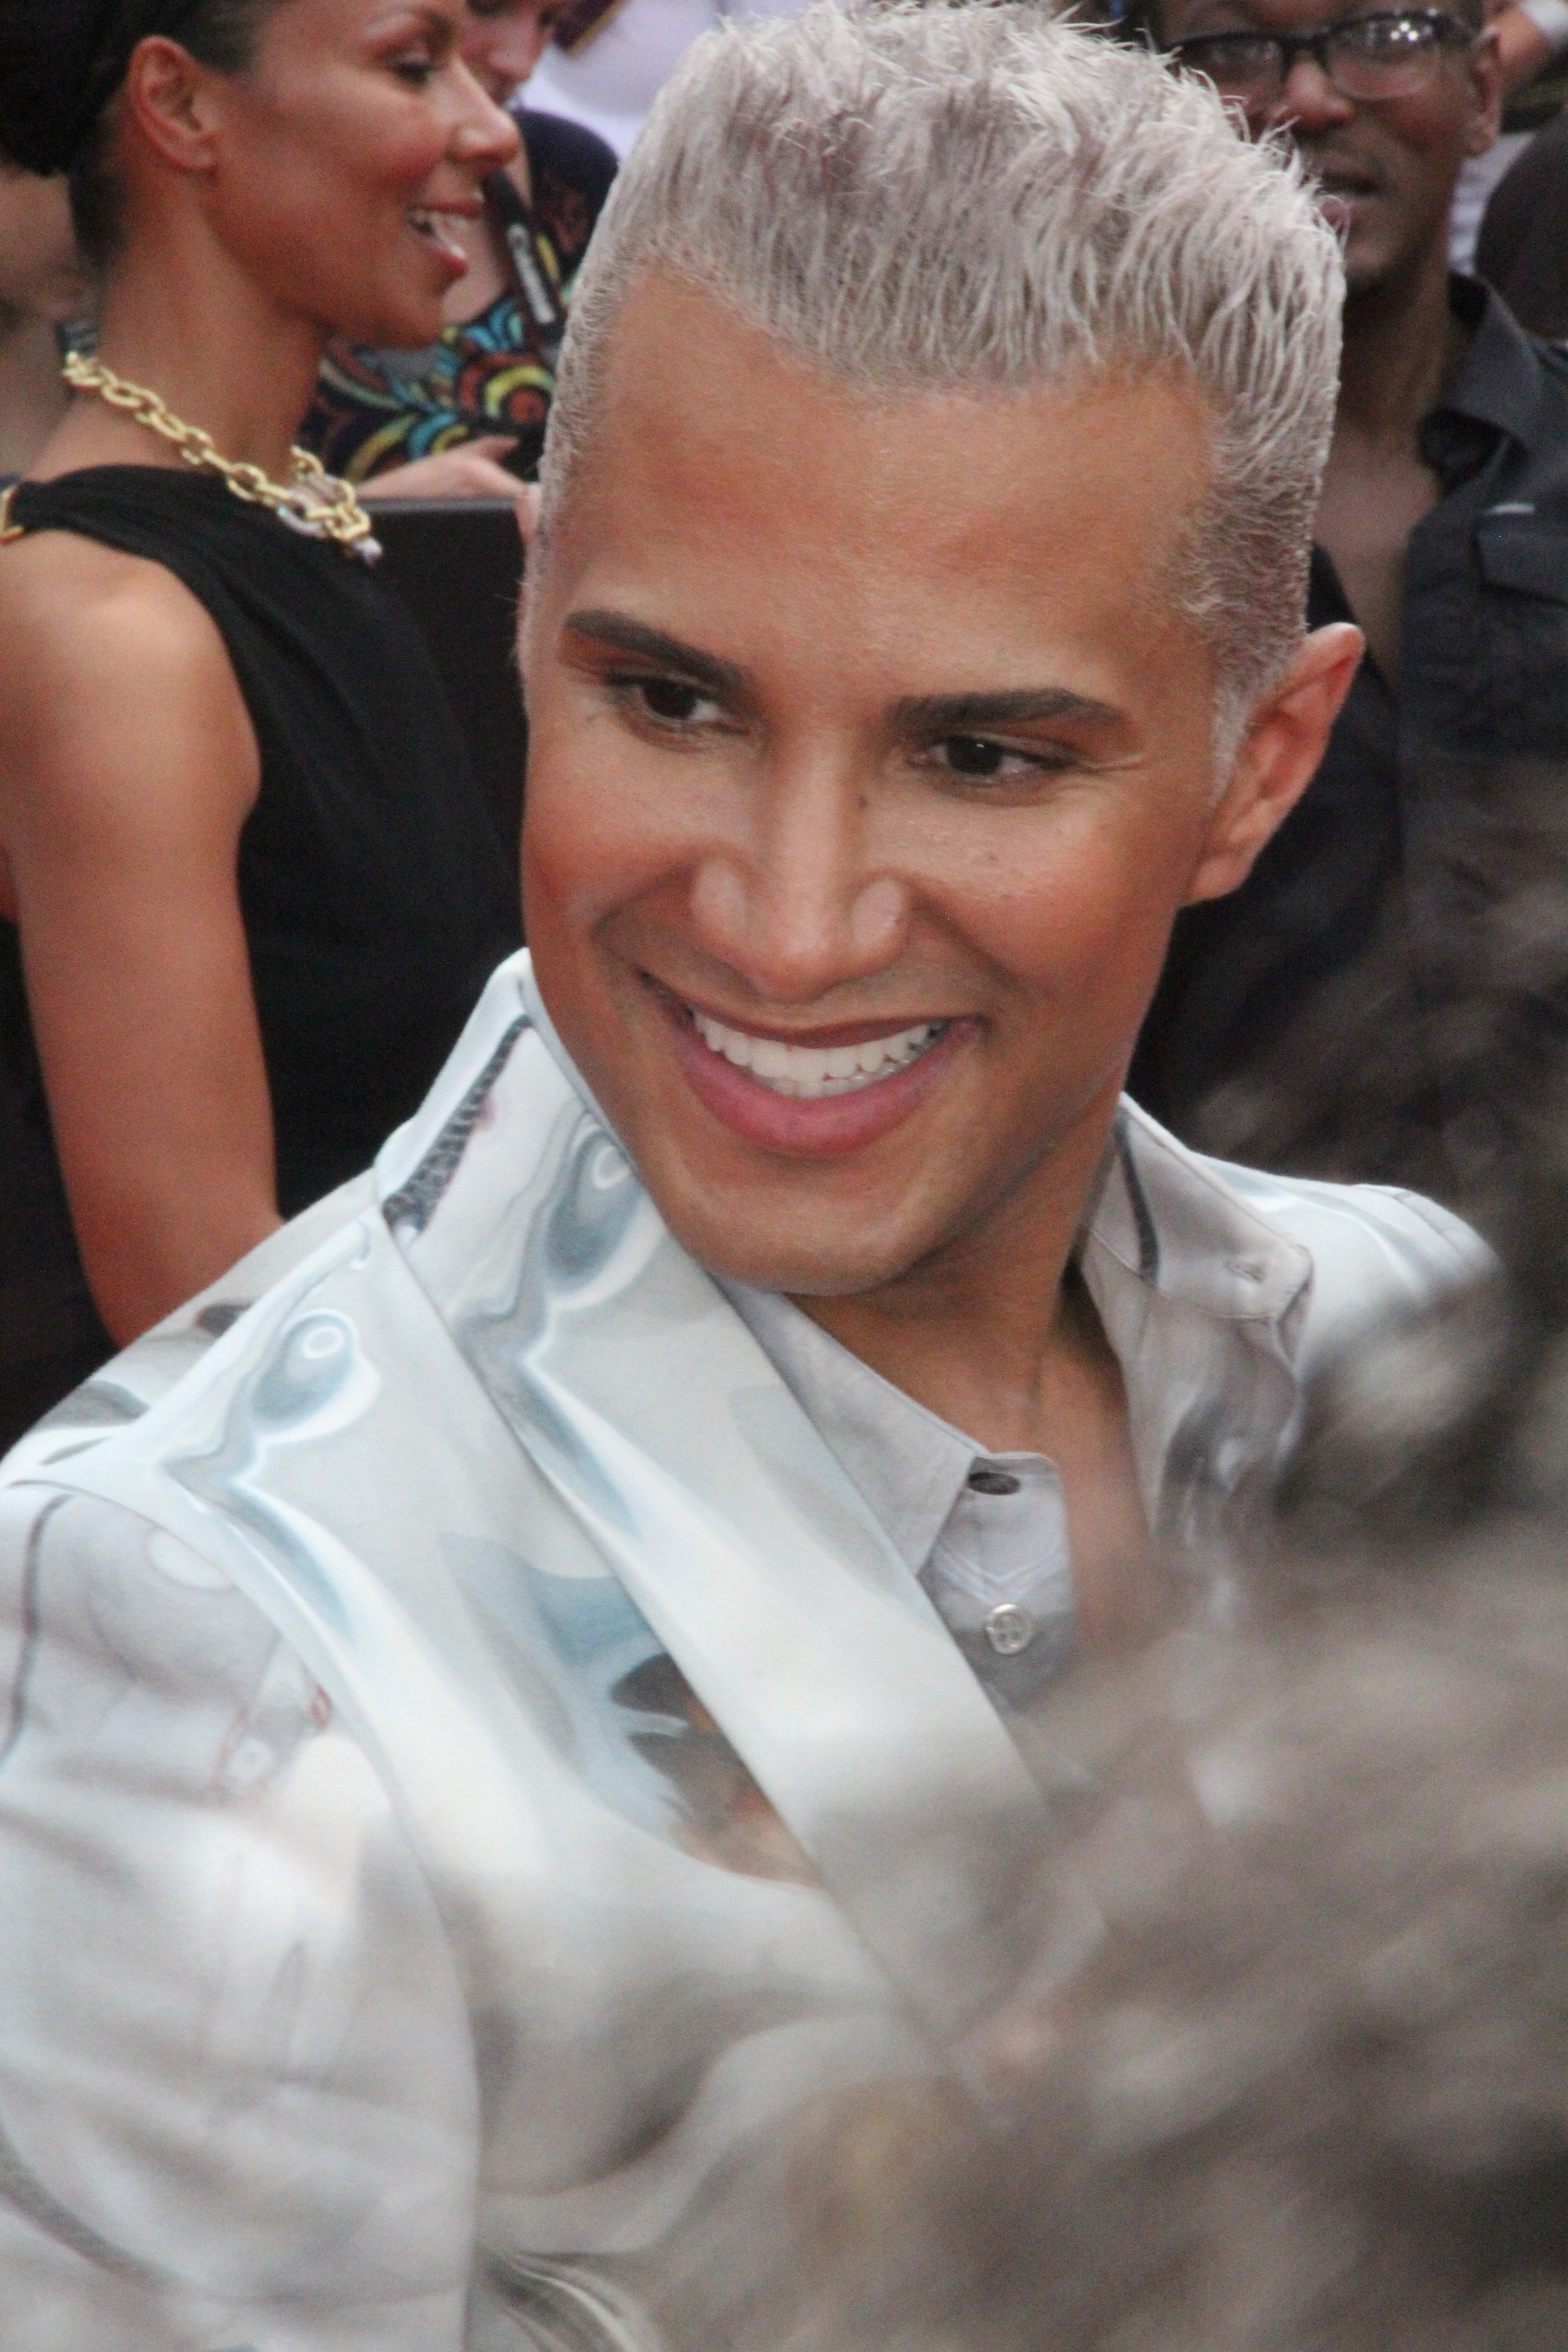 Image of Jay Manuel from Wikidata